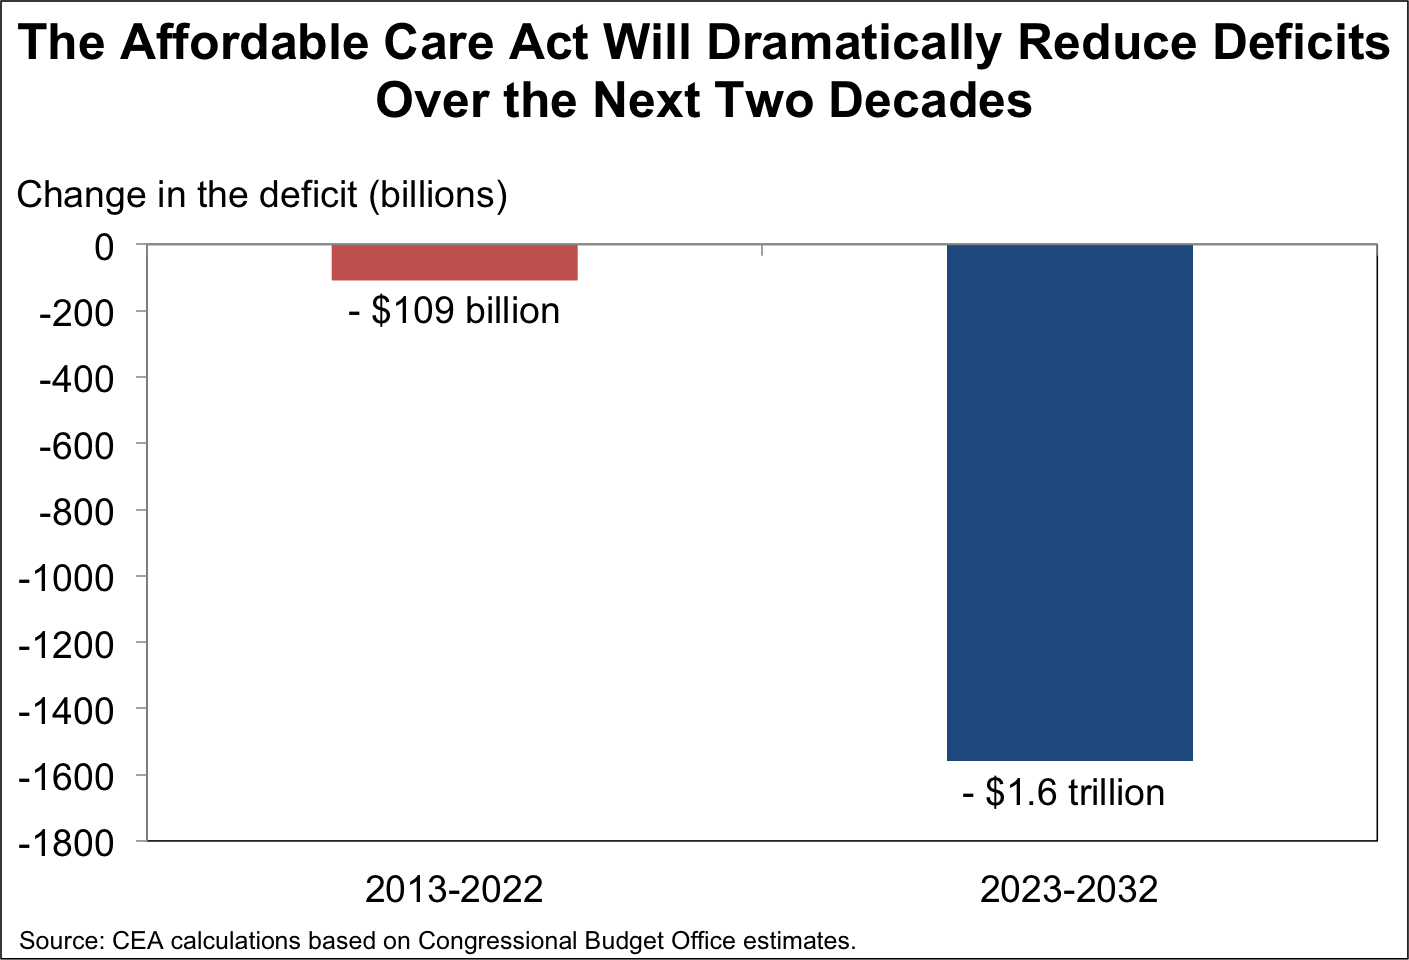 aca deficit reduction